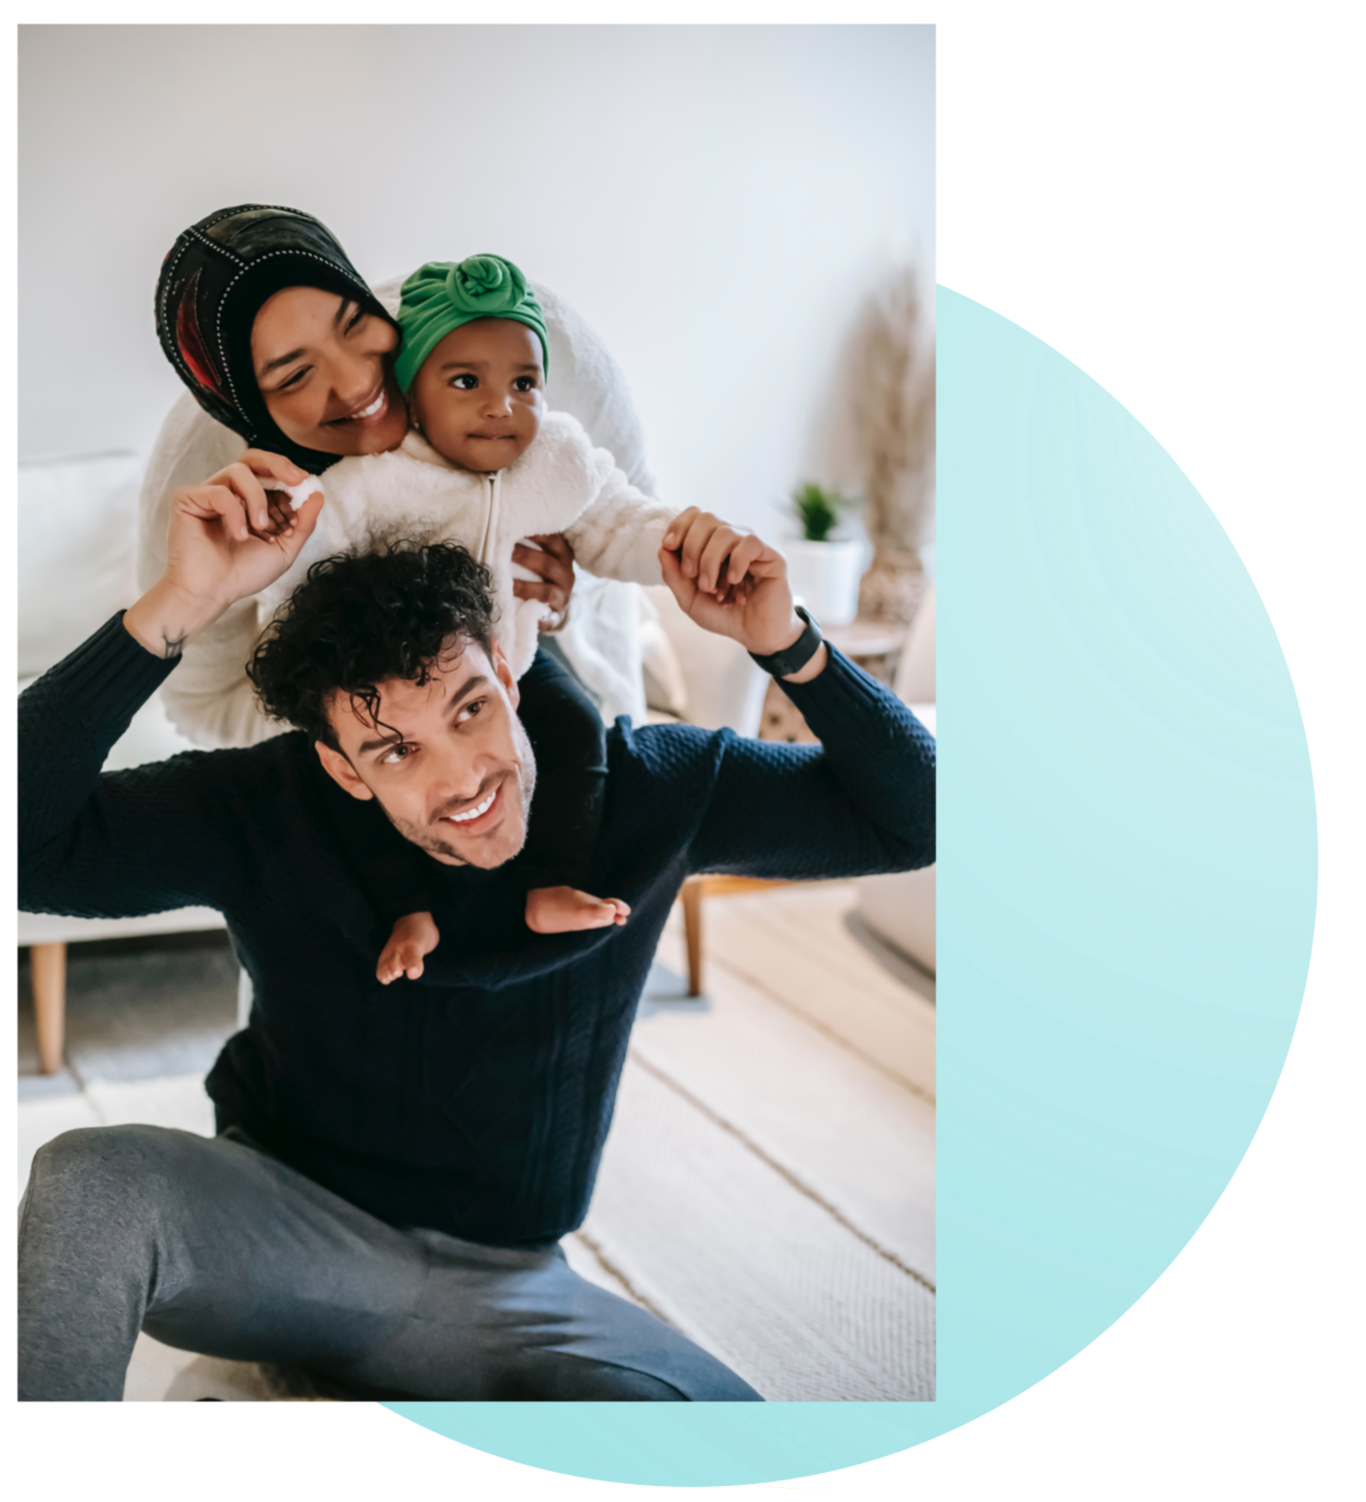 Image of two adults and a baby smiling together in a living room. This image depicts how meeting with a psychiatrist for psychiatric consultations in New York City can help you feel better. | 10001 | 10002 | 11211